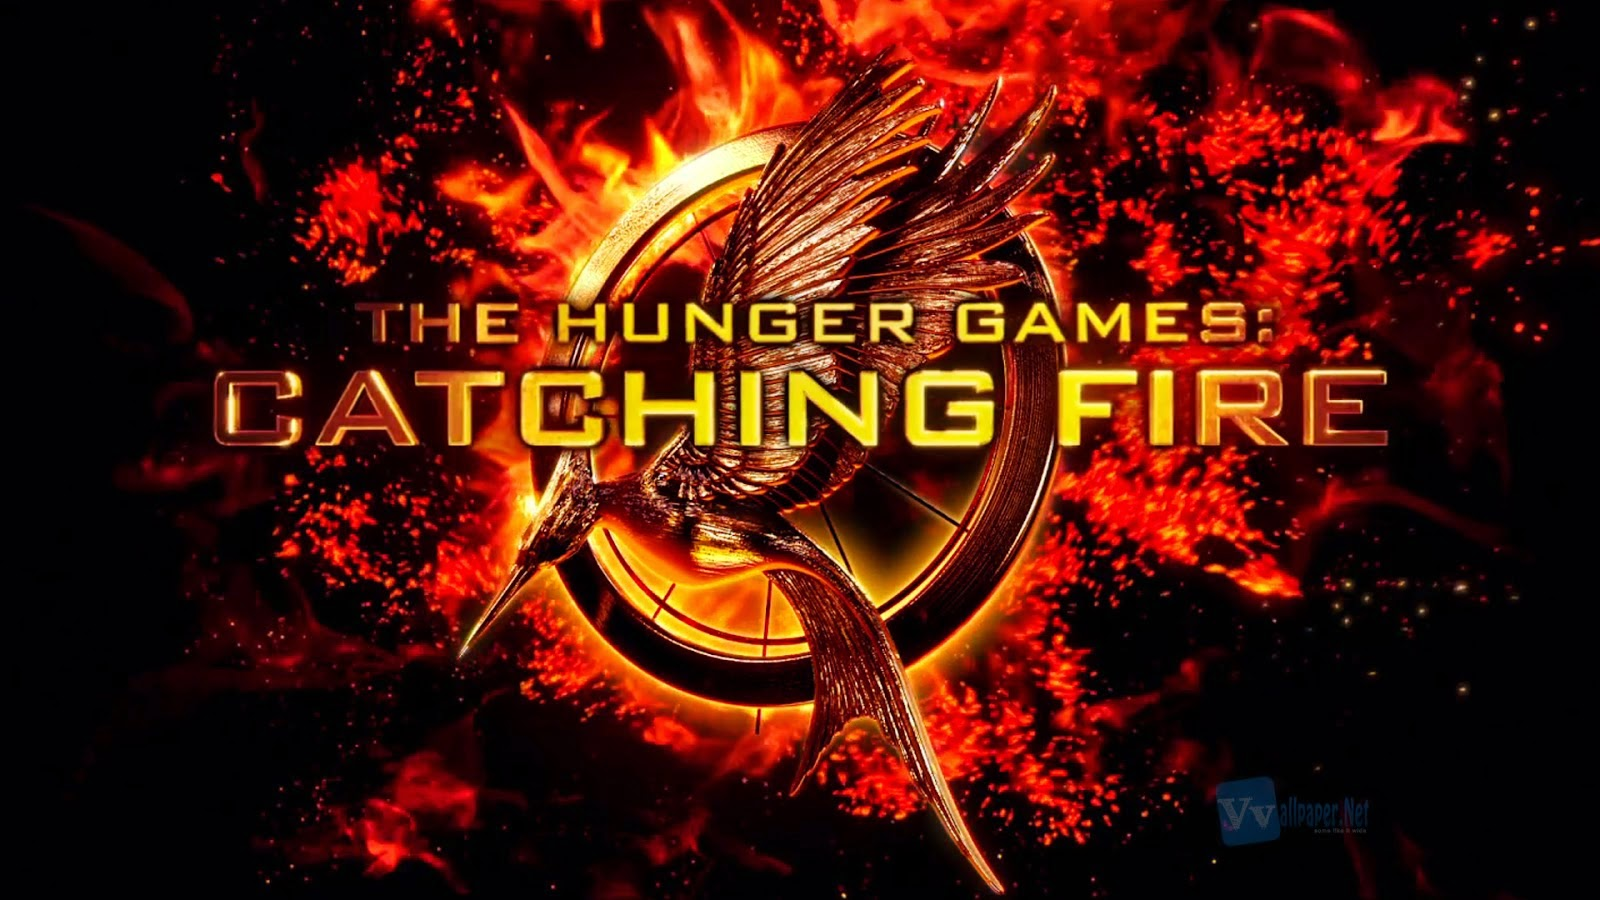 The hunger games catching fire PC game Download